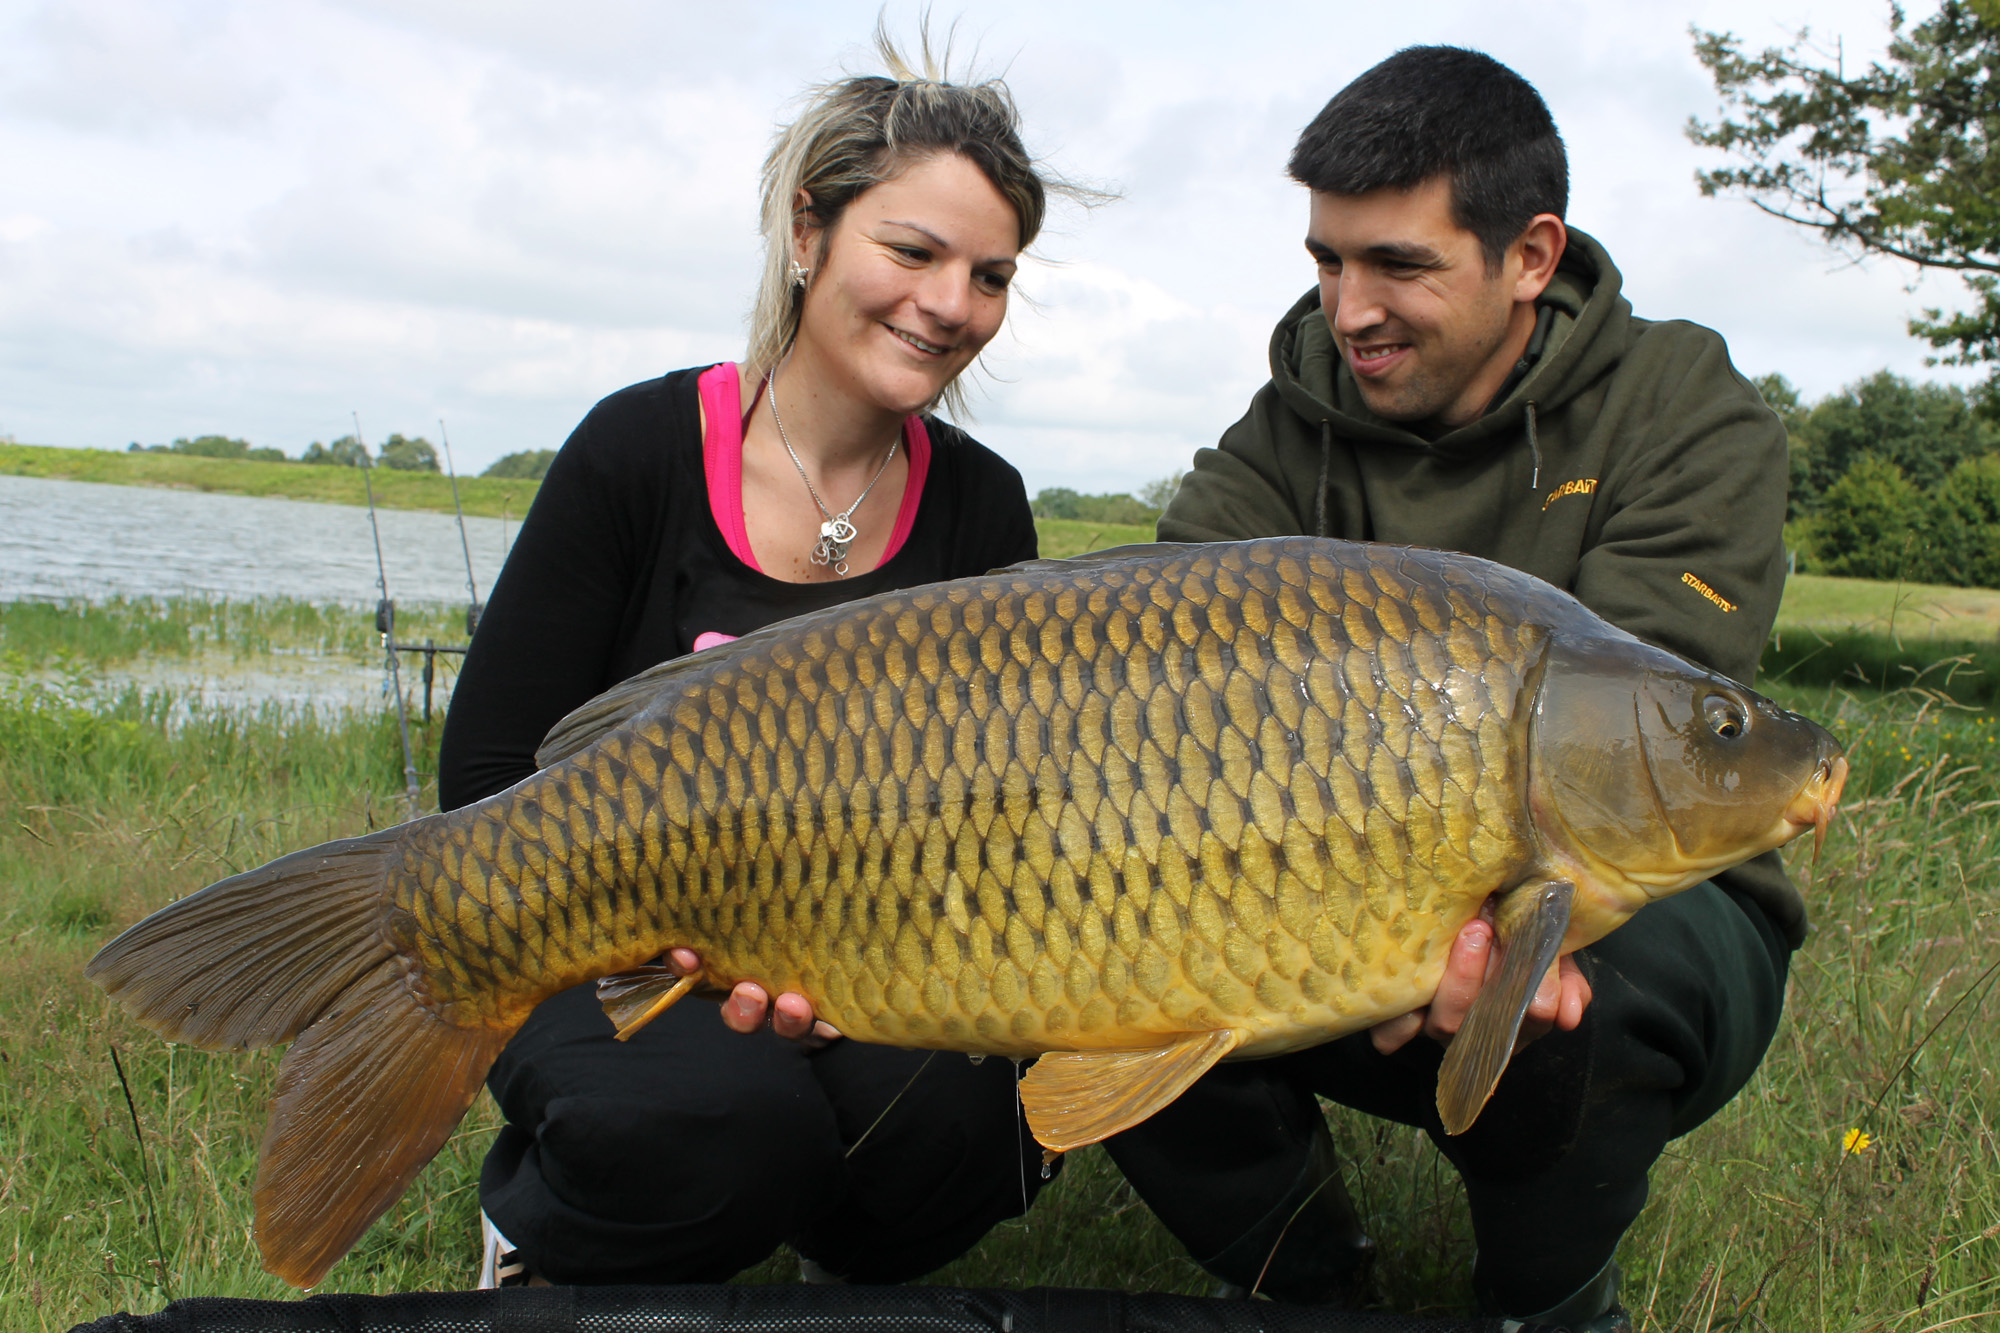 http://starbaits.com/fichiers/images/team/gallery/DUCERE_Cedric/10-DUCERE-CEDRIC.JPG